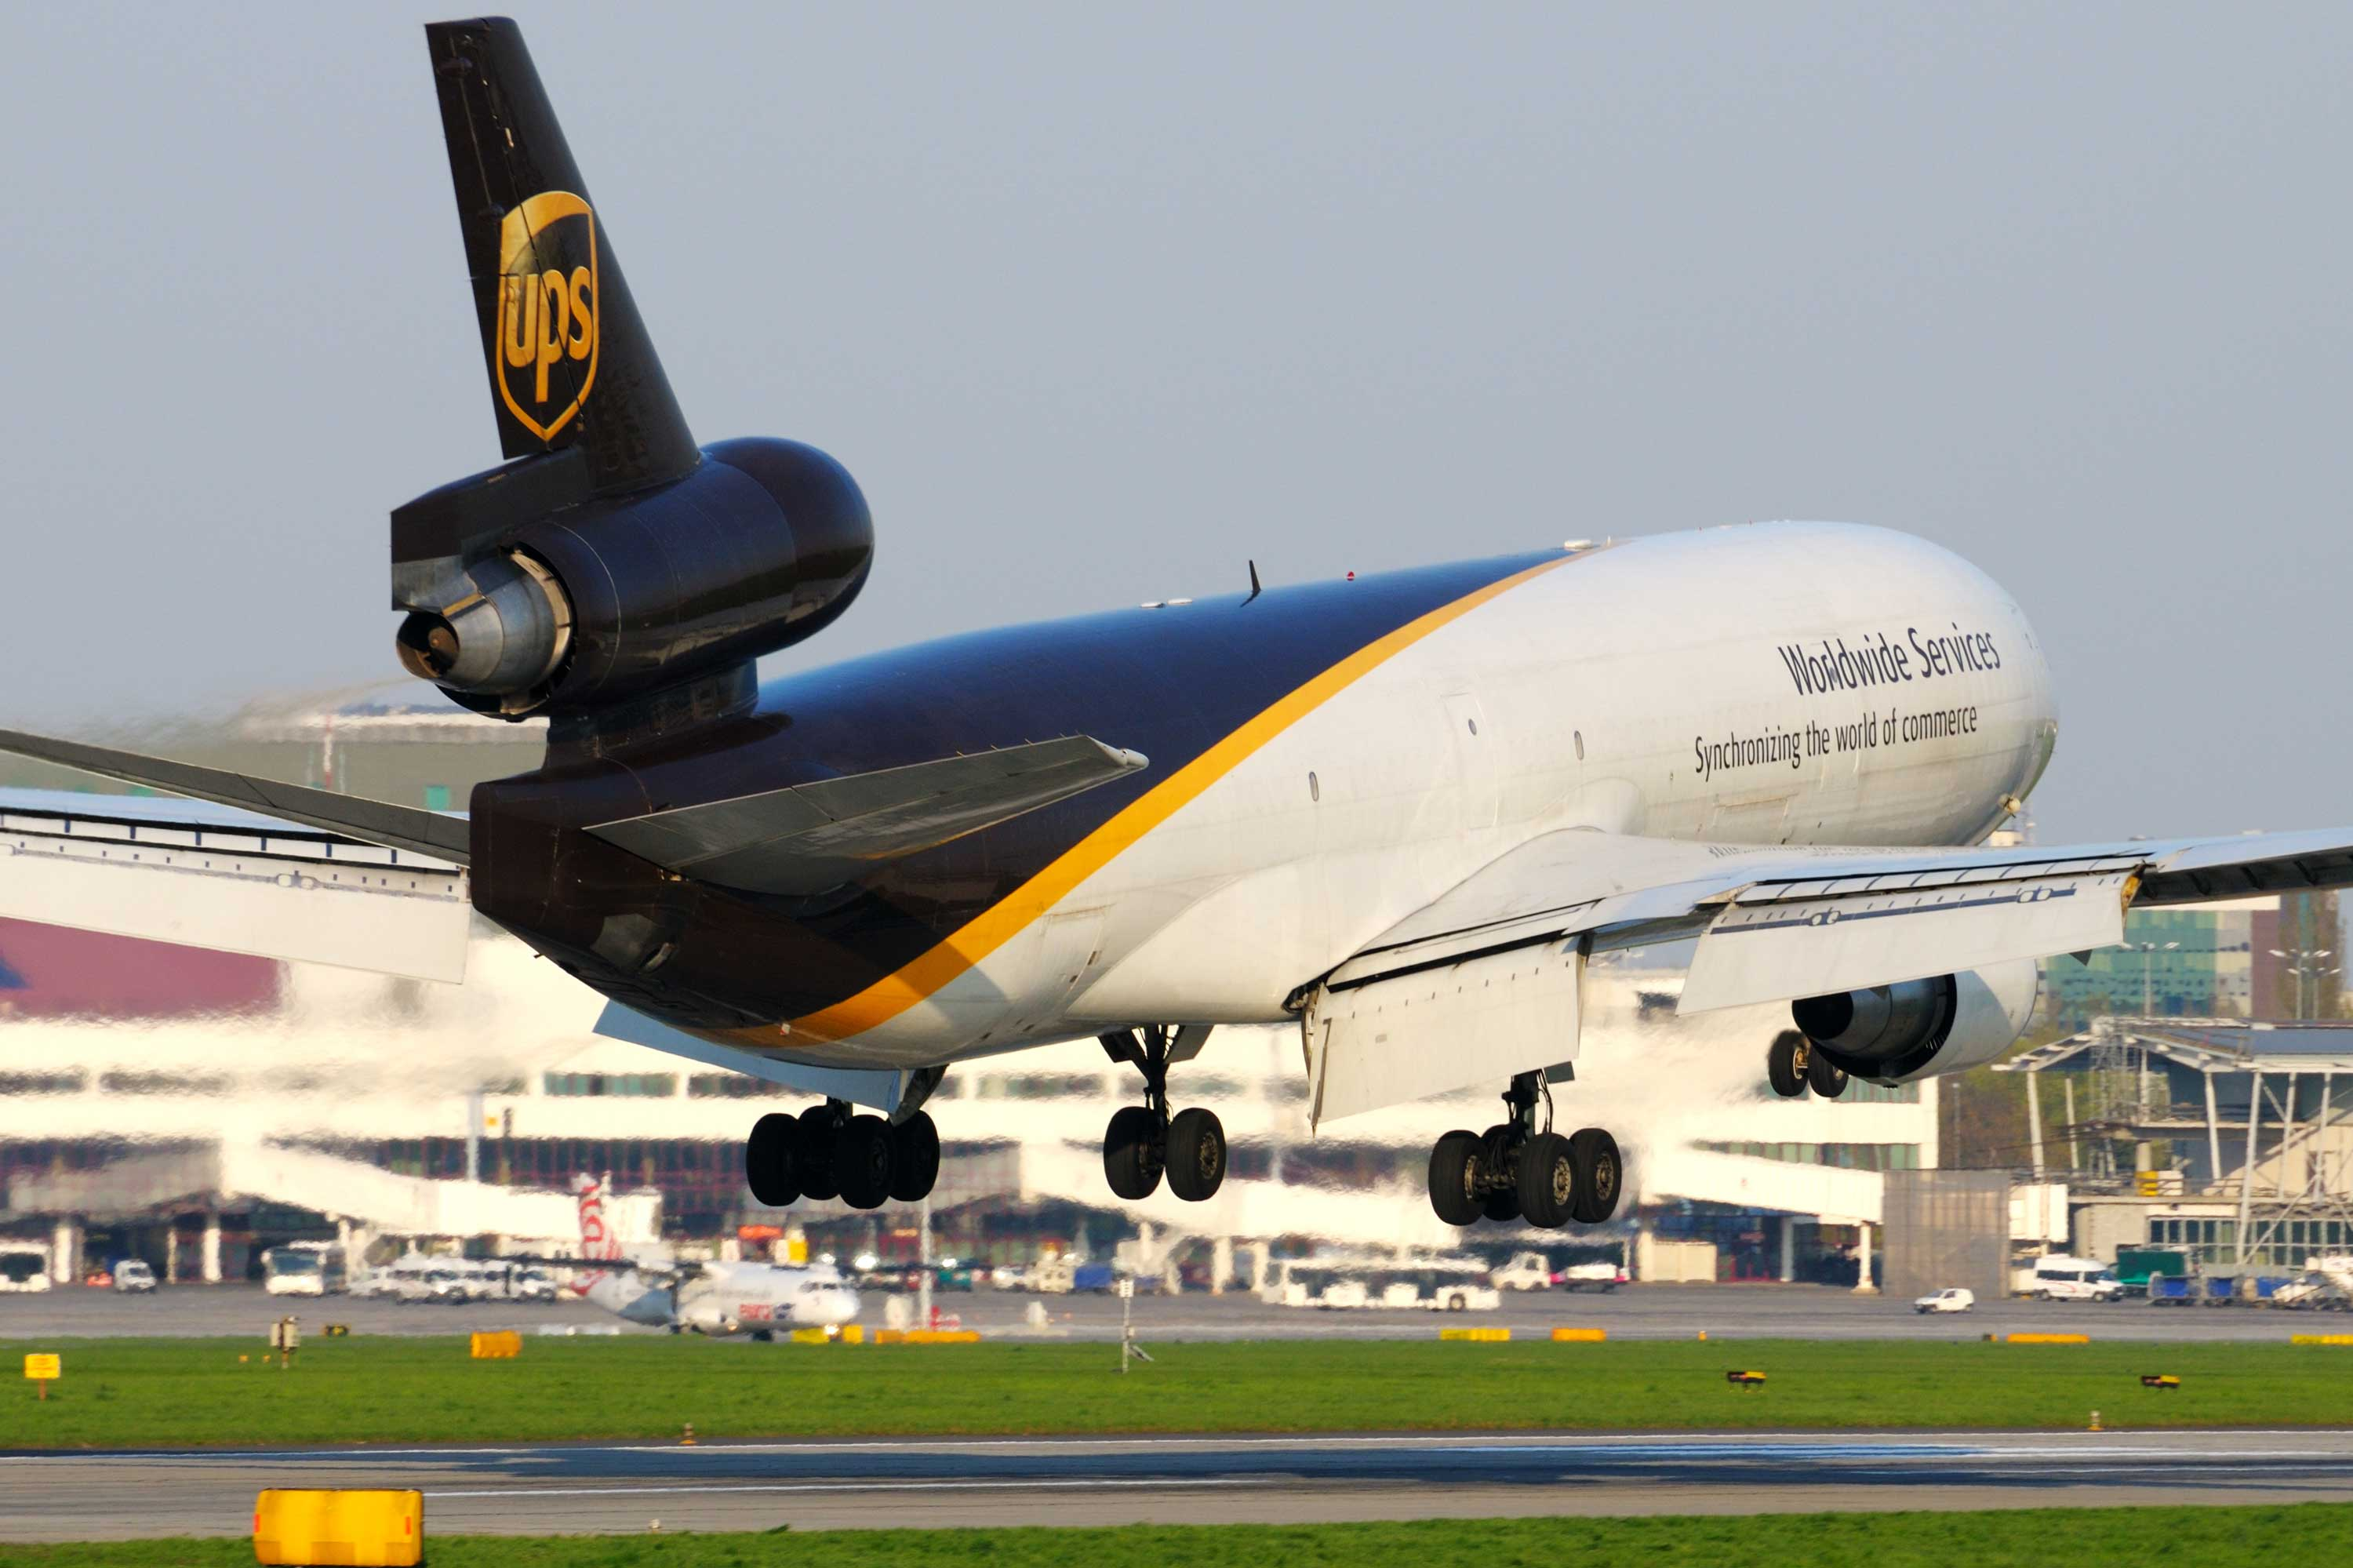 UPS Airlines in May 2020 announced its plan to expand fleet by adding MD-11 and Boeing 747-8 freighter jets.